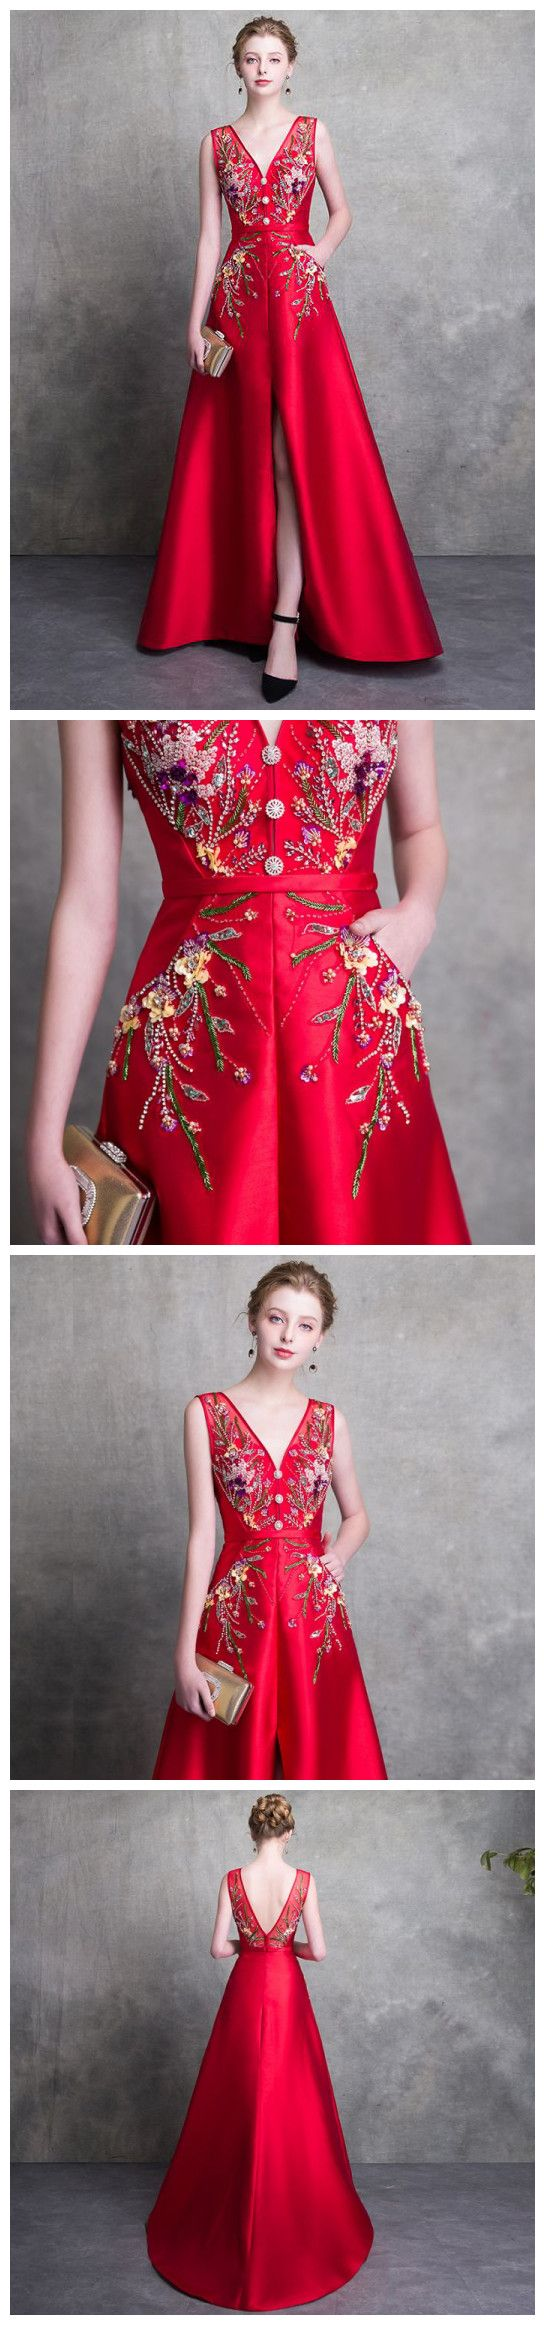 red prom dresses aline long v neck satin beading prom dress